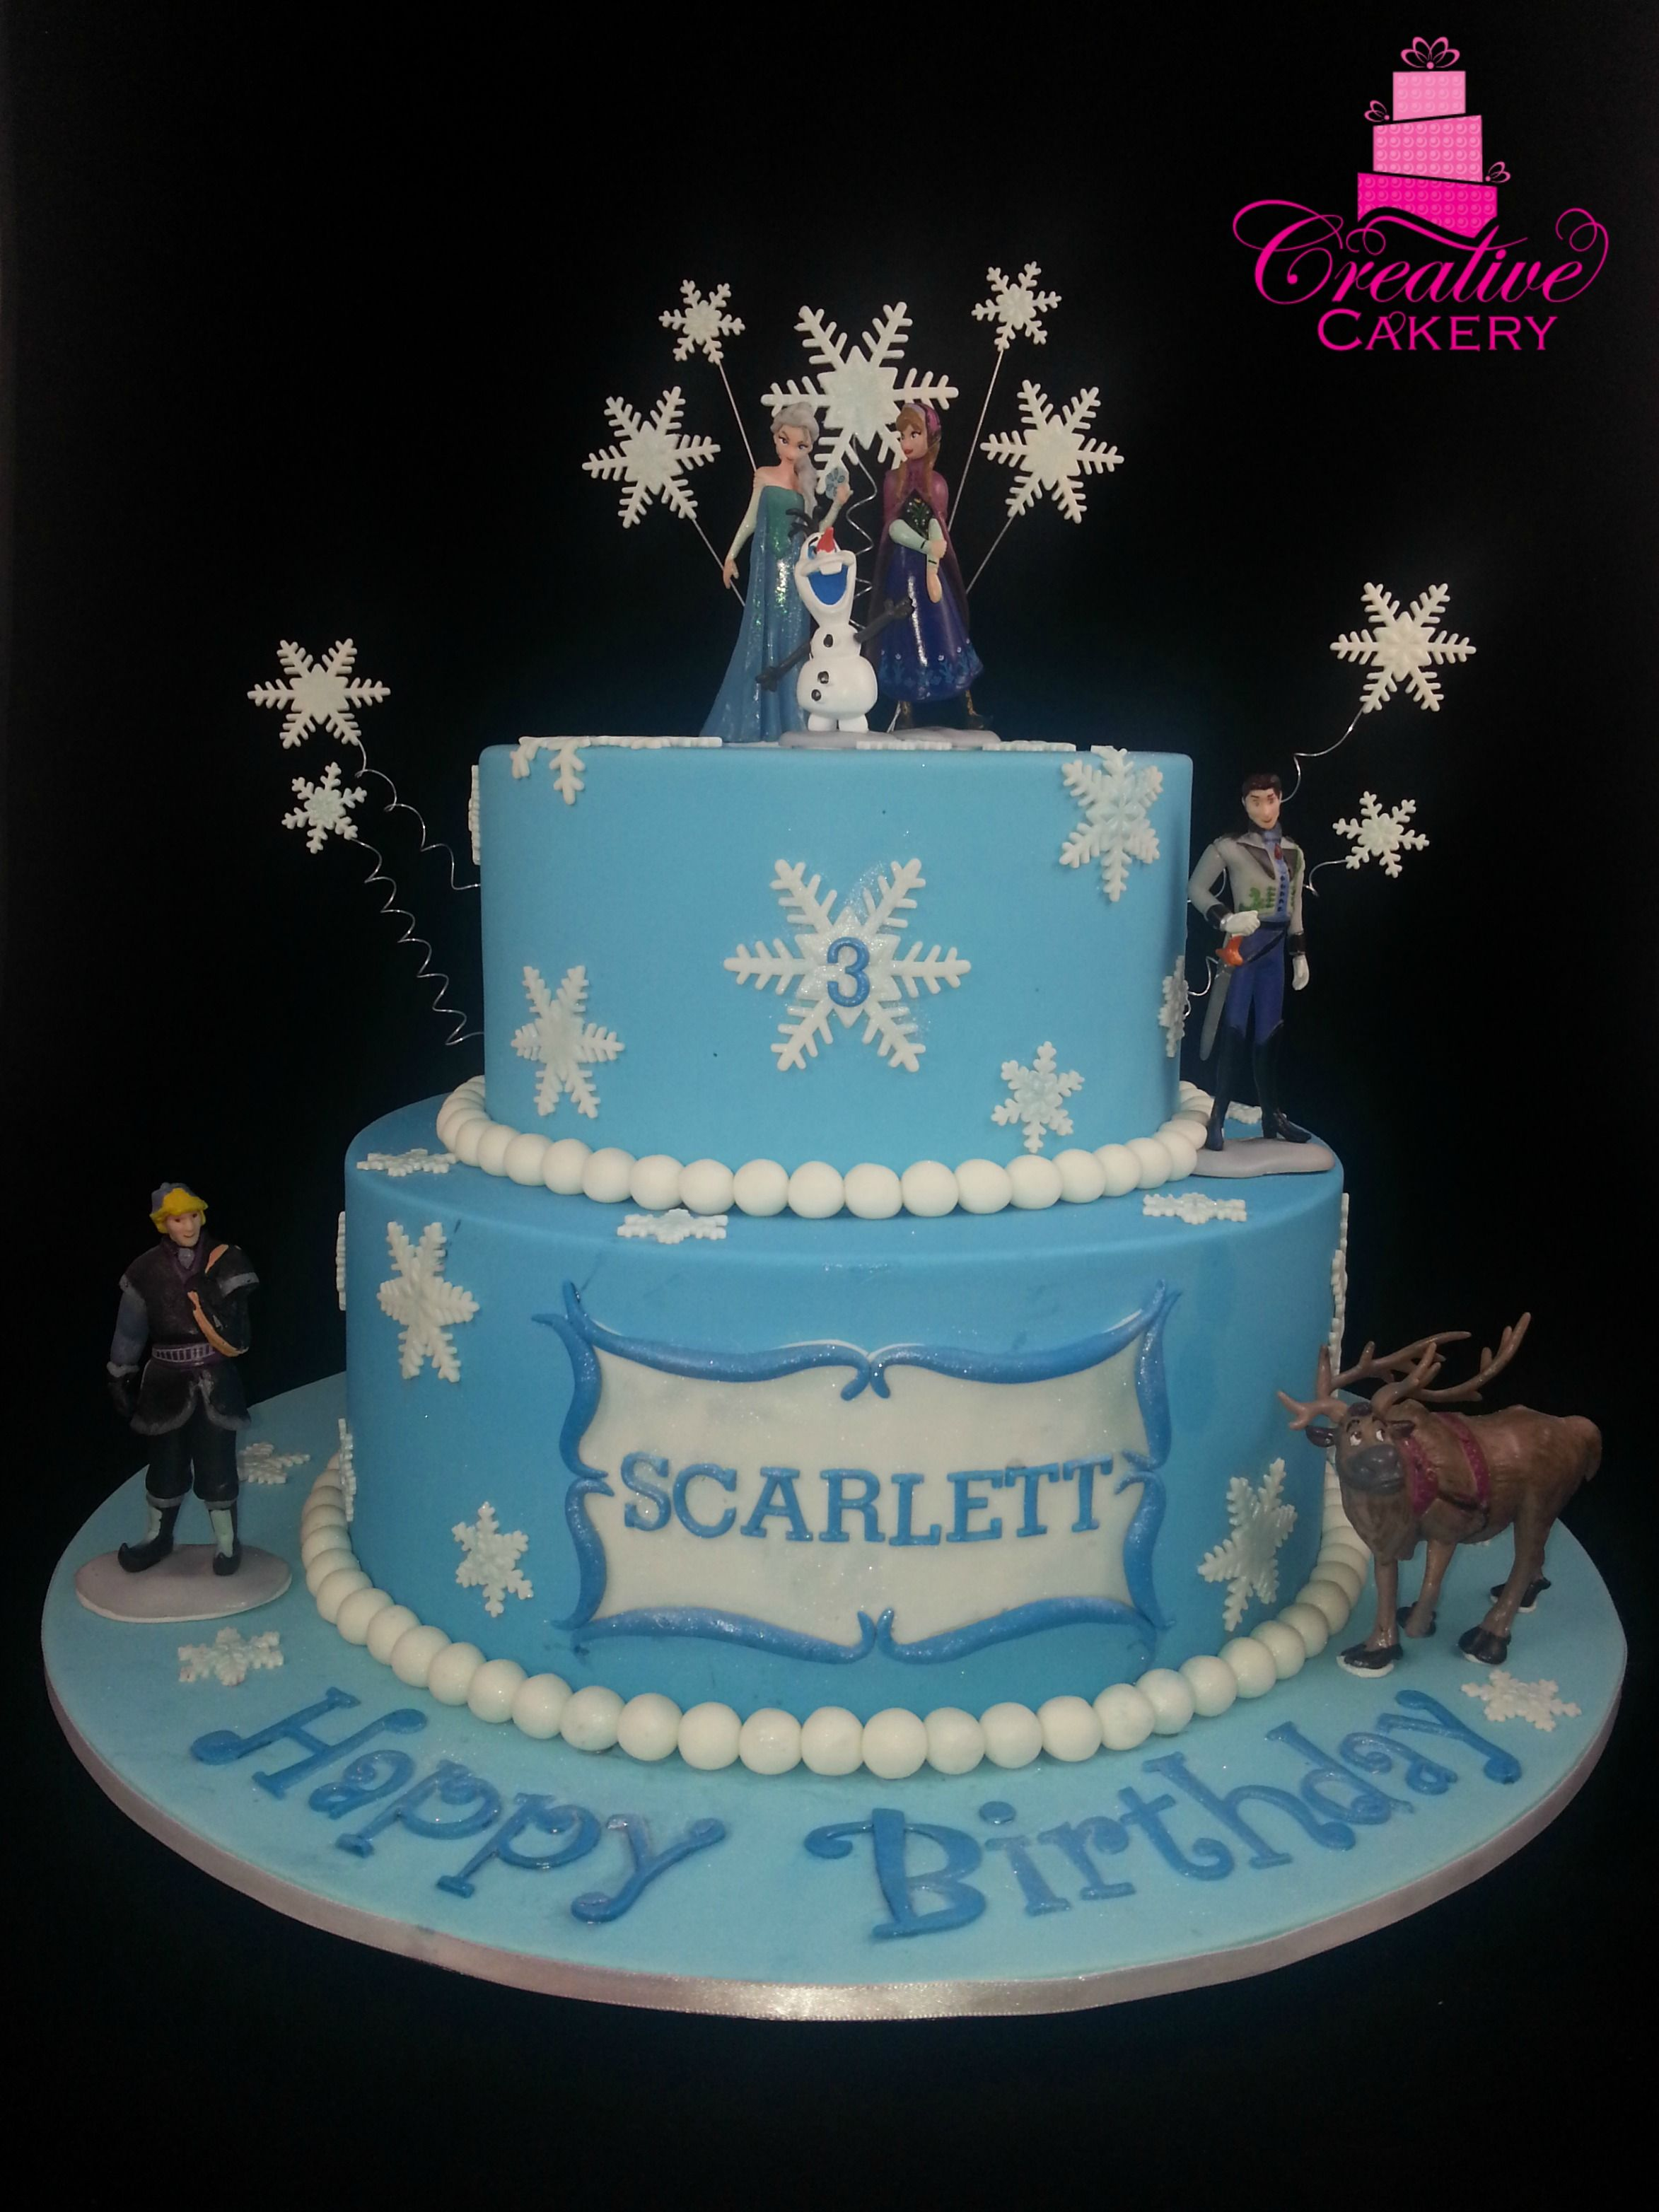 2 Tier Frozen Themed Cake Decorated With Snowflakes And Frozen